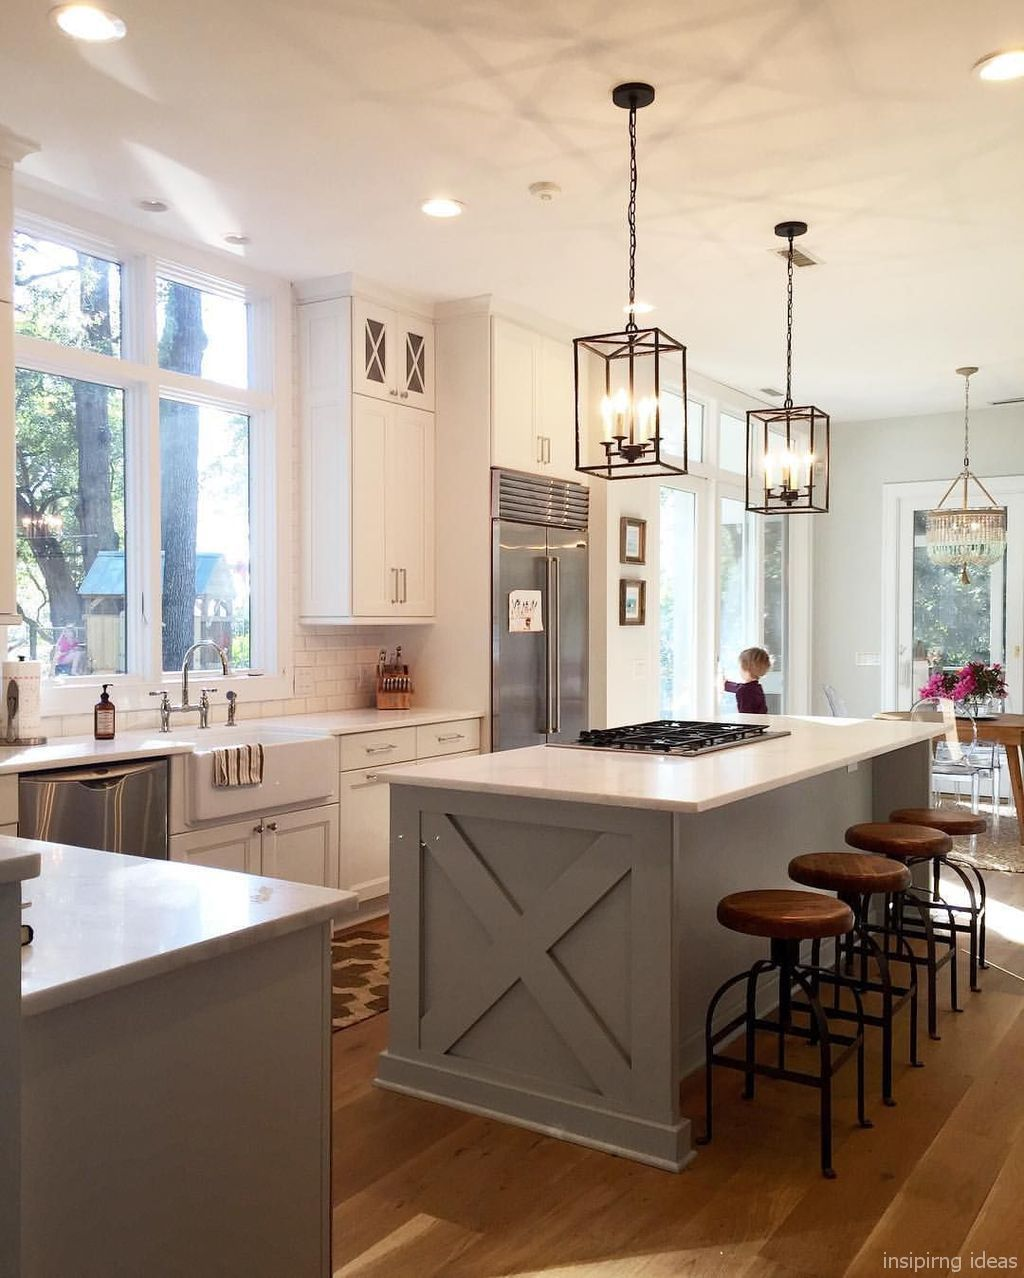 43 Incredible Modern Farmhouse Kitchen Cabinets Ideas In 2019